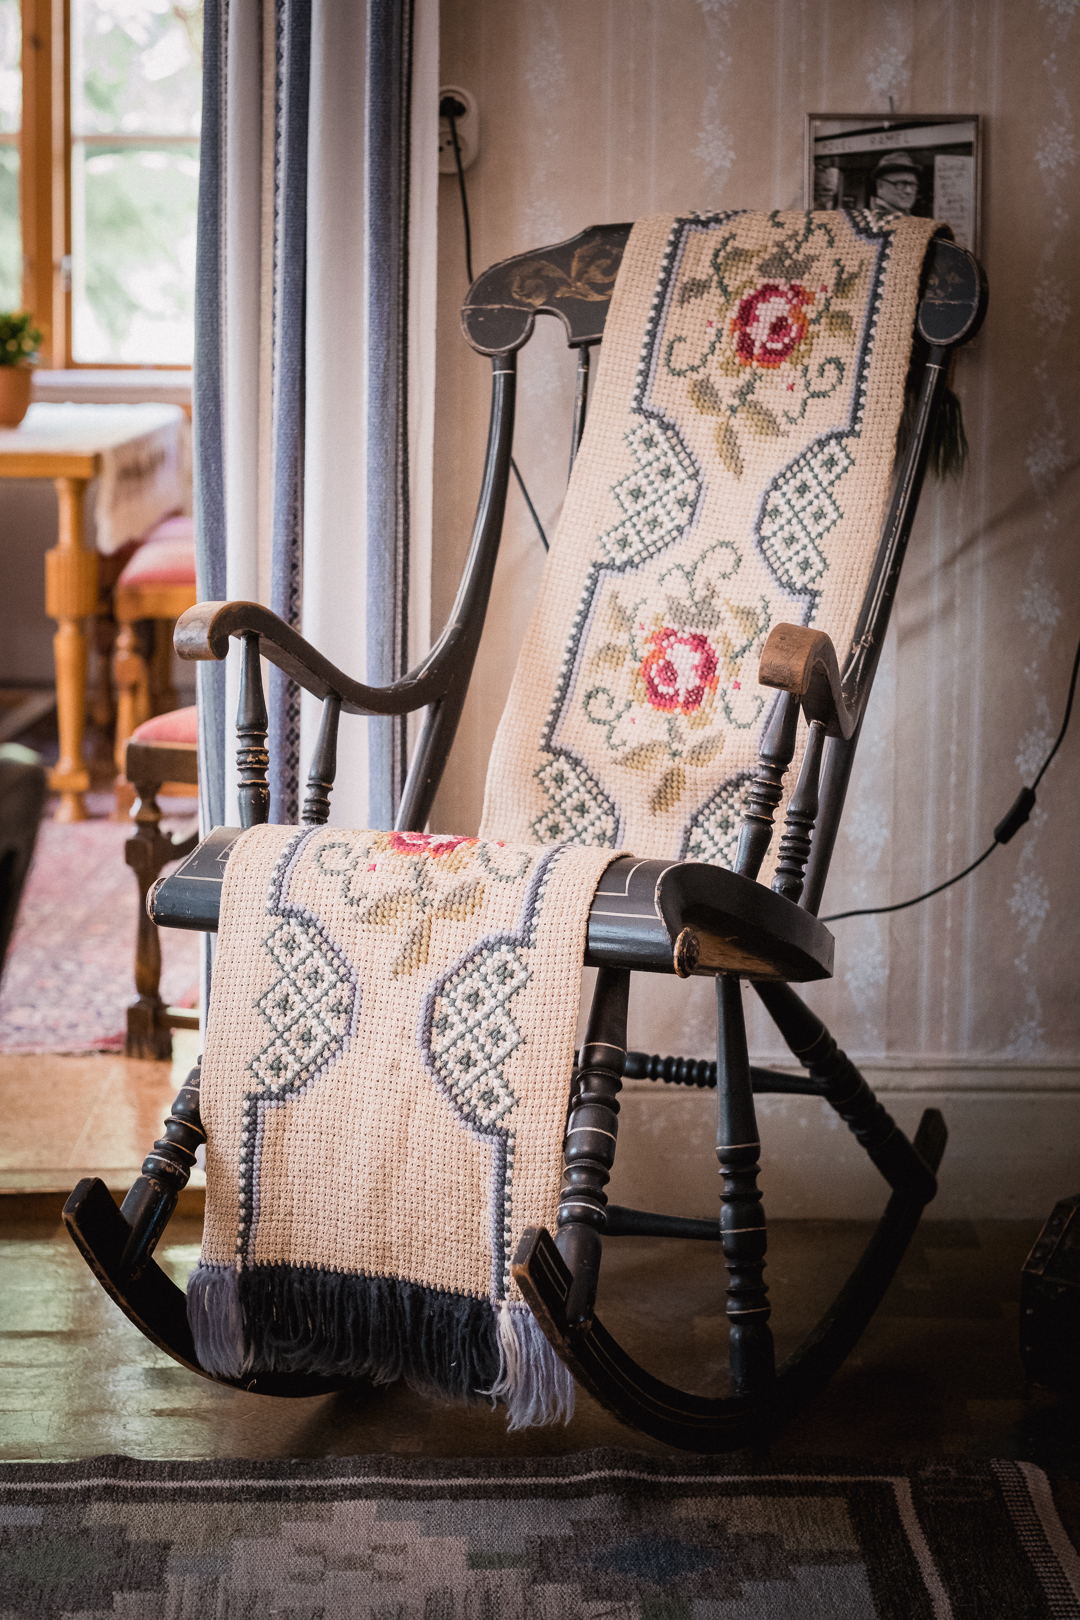 The rocking chair at the Borgvattnet